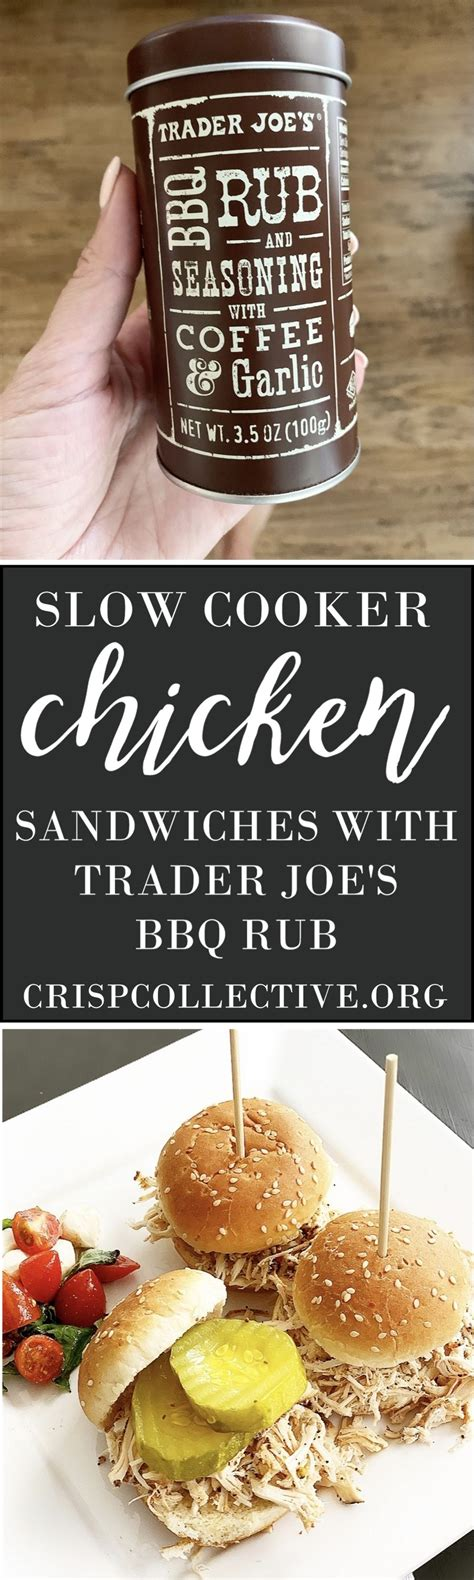 Coat meat in oil mixture then rub coffee mixture onto meat, covering all sides. Slow Cooker Chicken Sandwiches using Trader Joe's BBQ Rub - Crisp Collective | Slow cooker ...